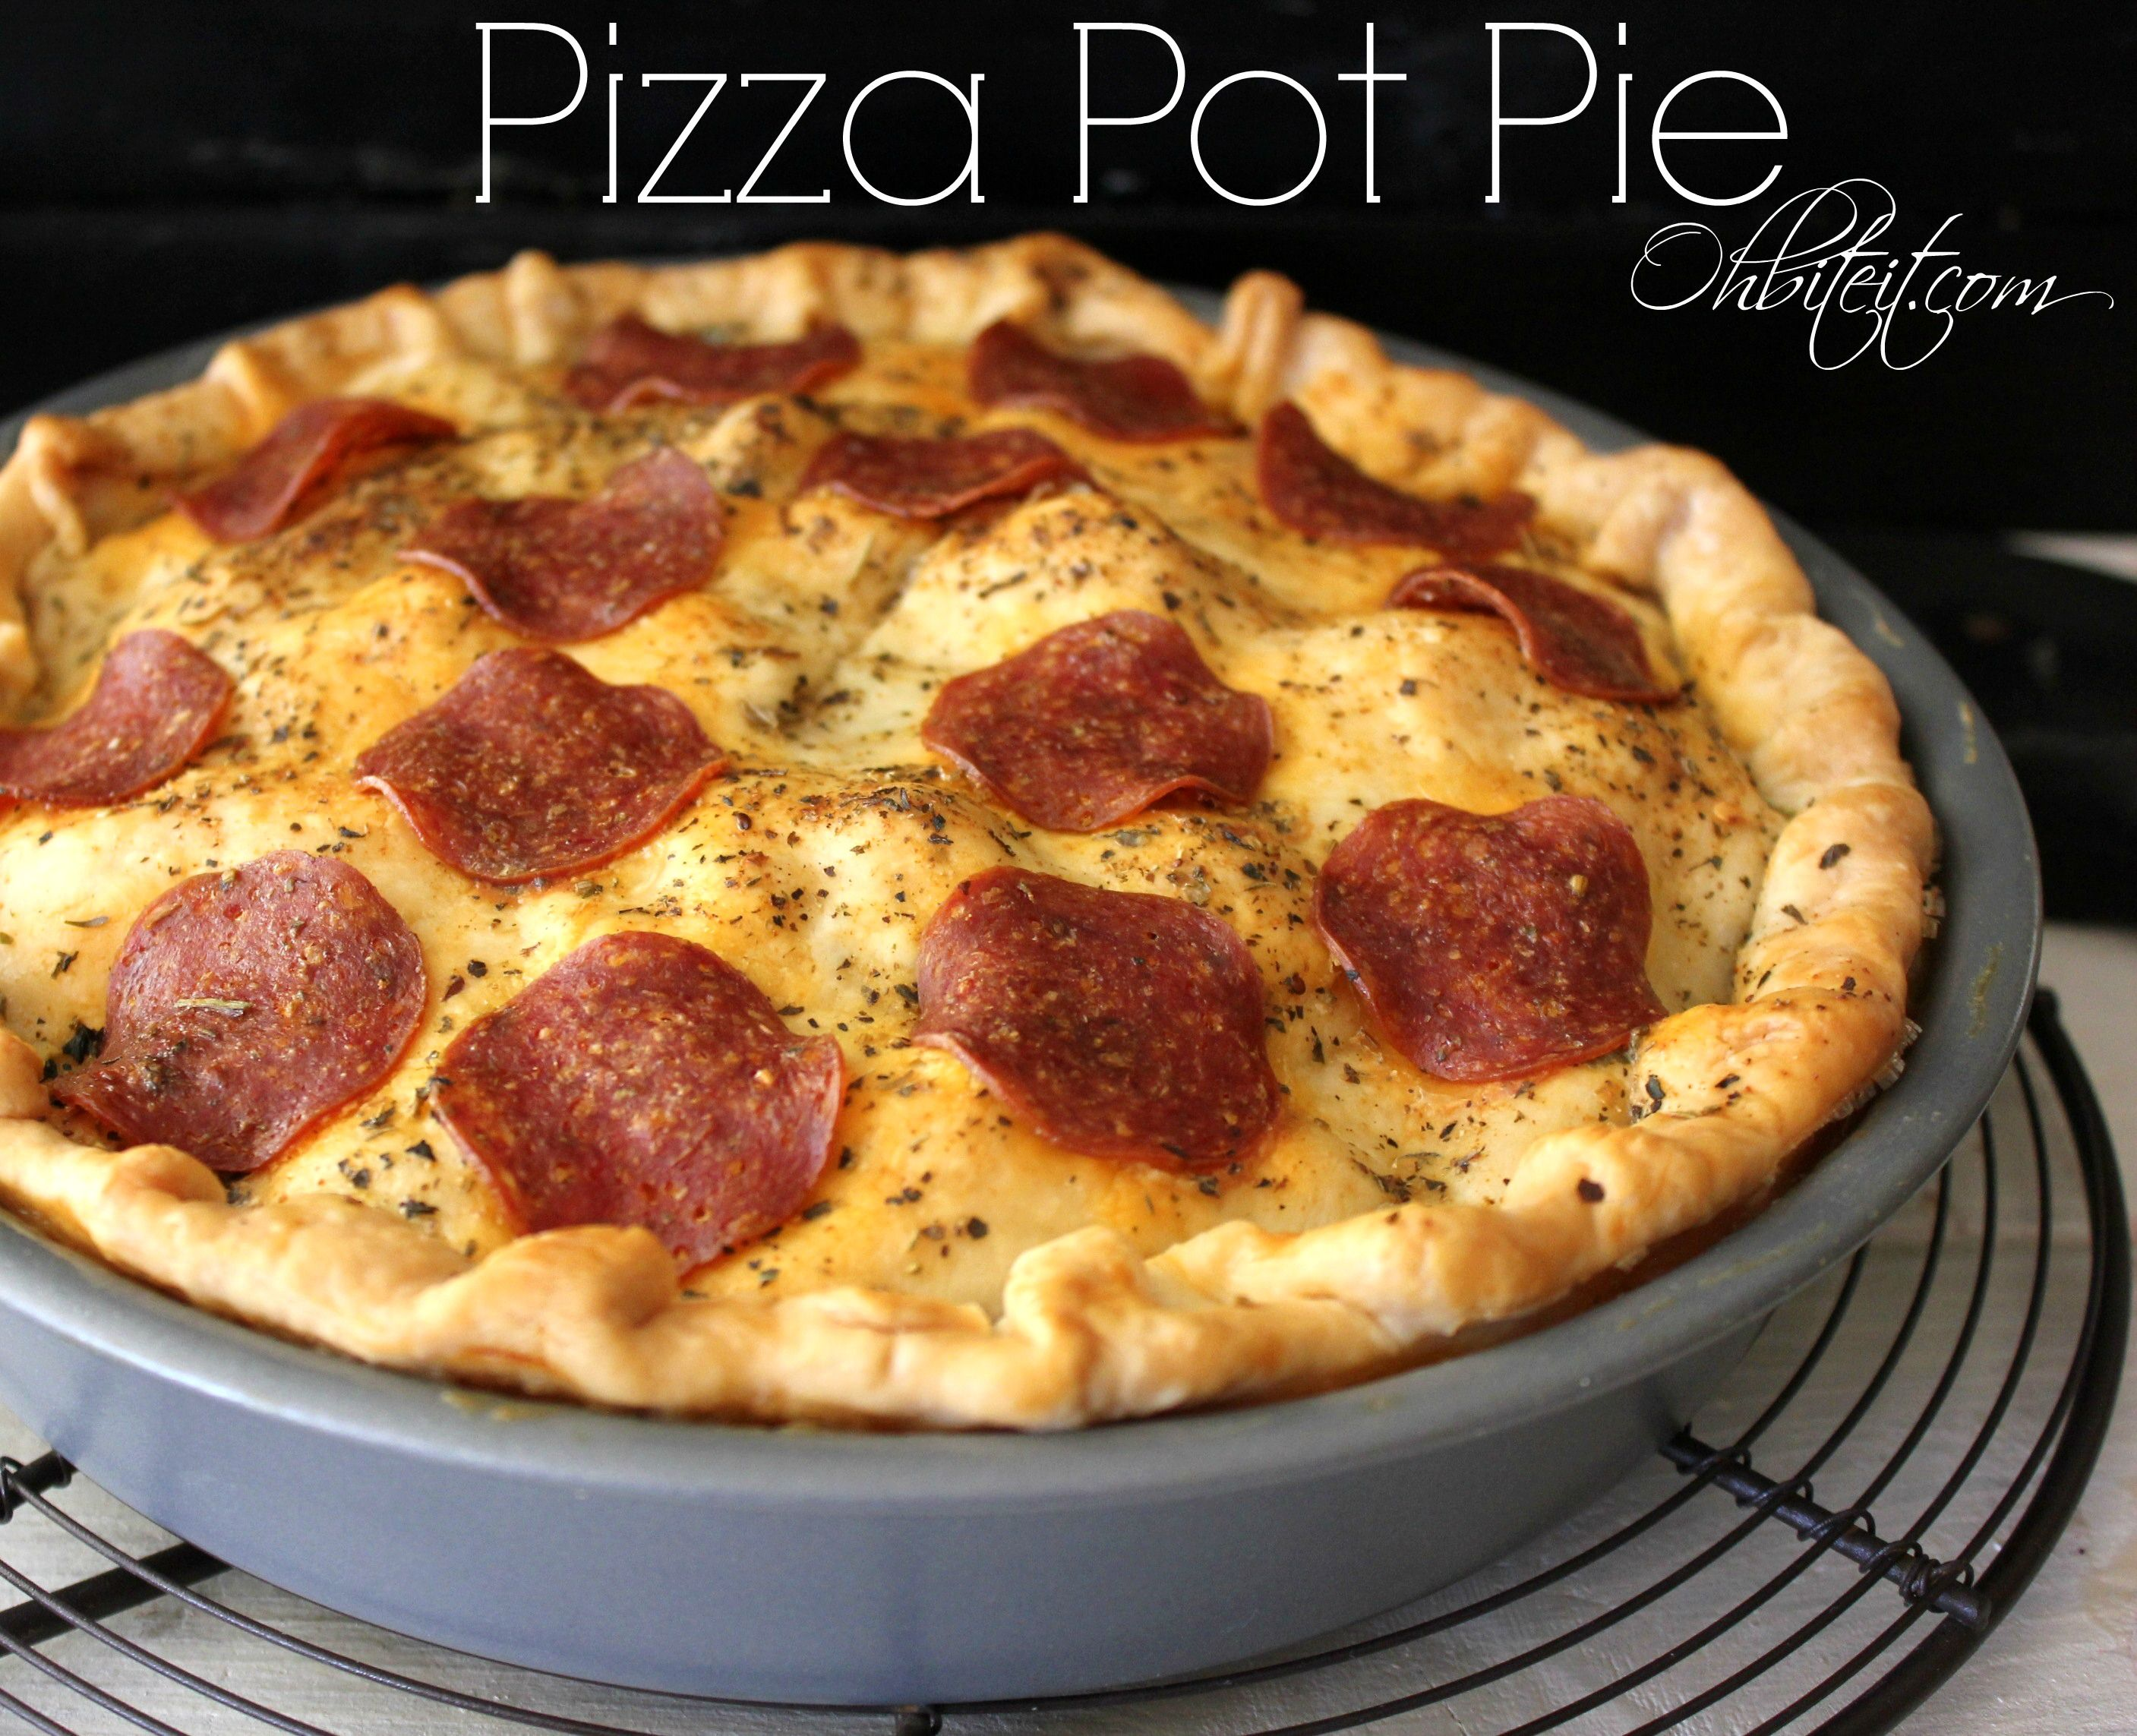 pot pies grilled chicken pizza pizza pot pie pizza pizza pot pie ...